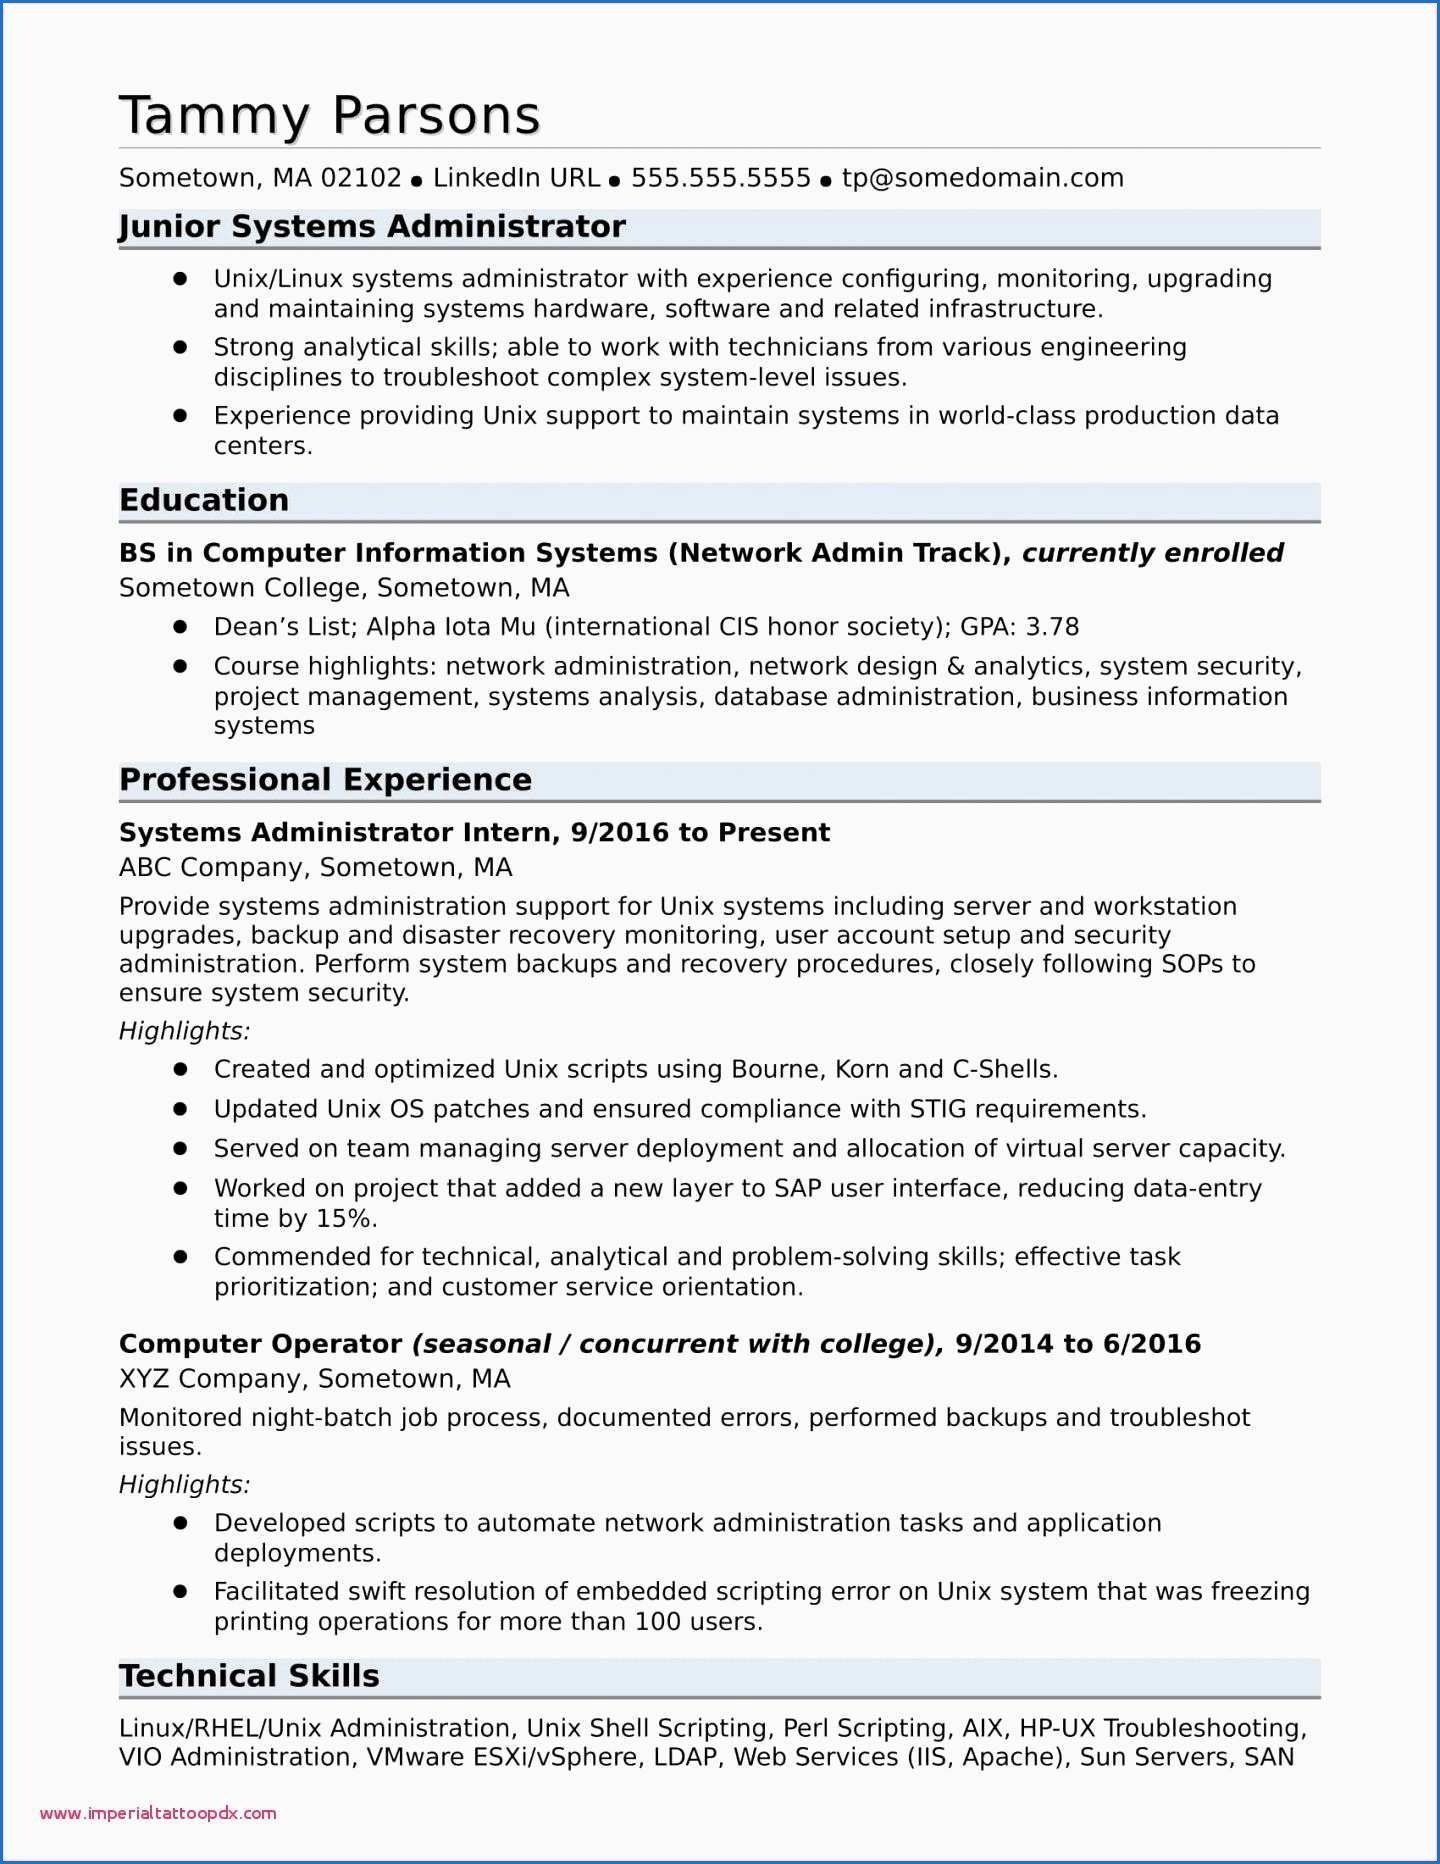 System Admin Resume Example Fresh Resume 2016 Sample New Modele Cv 2016 Model Resume Examples Resume Examples Resume Skills Good Resume Examples